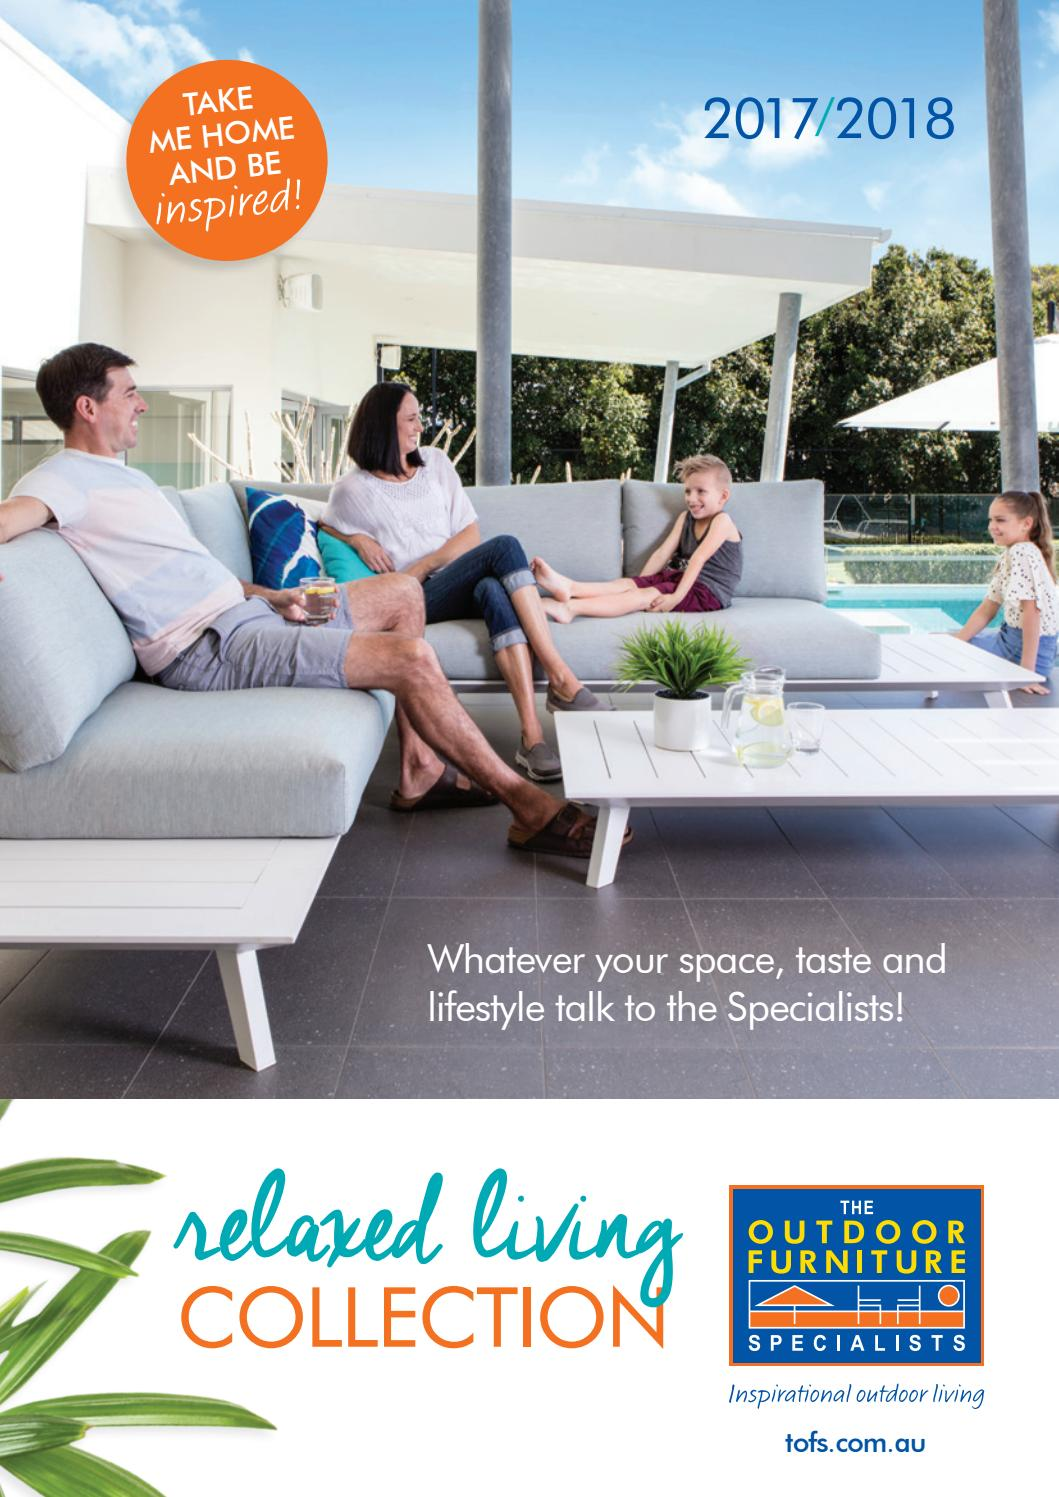 The outdoor furniture specialists relaxed living collection 2017 2018